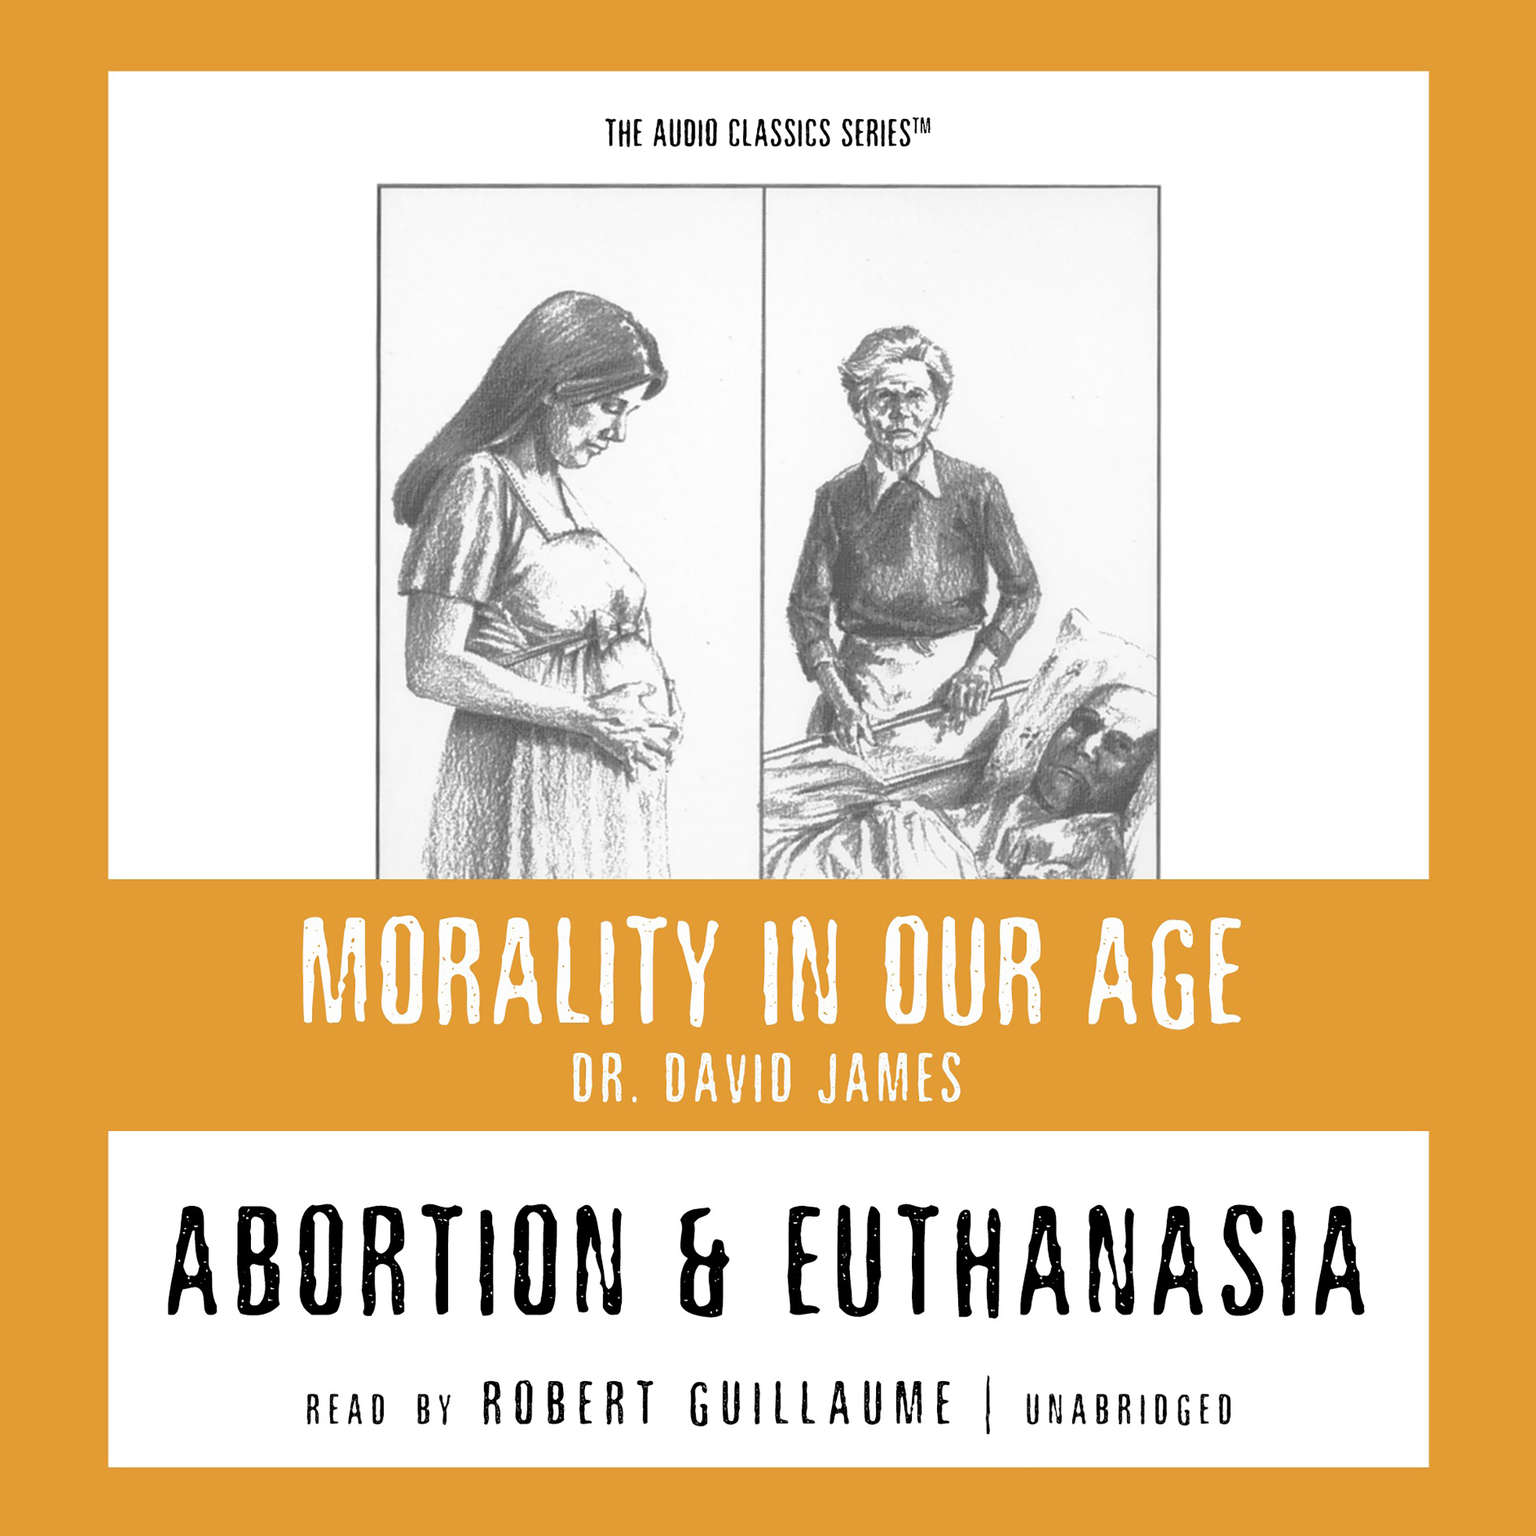 a personal opinion on the morality of euthanasia abortion and cheating